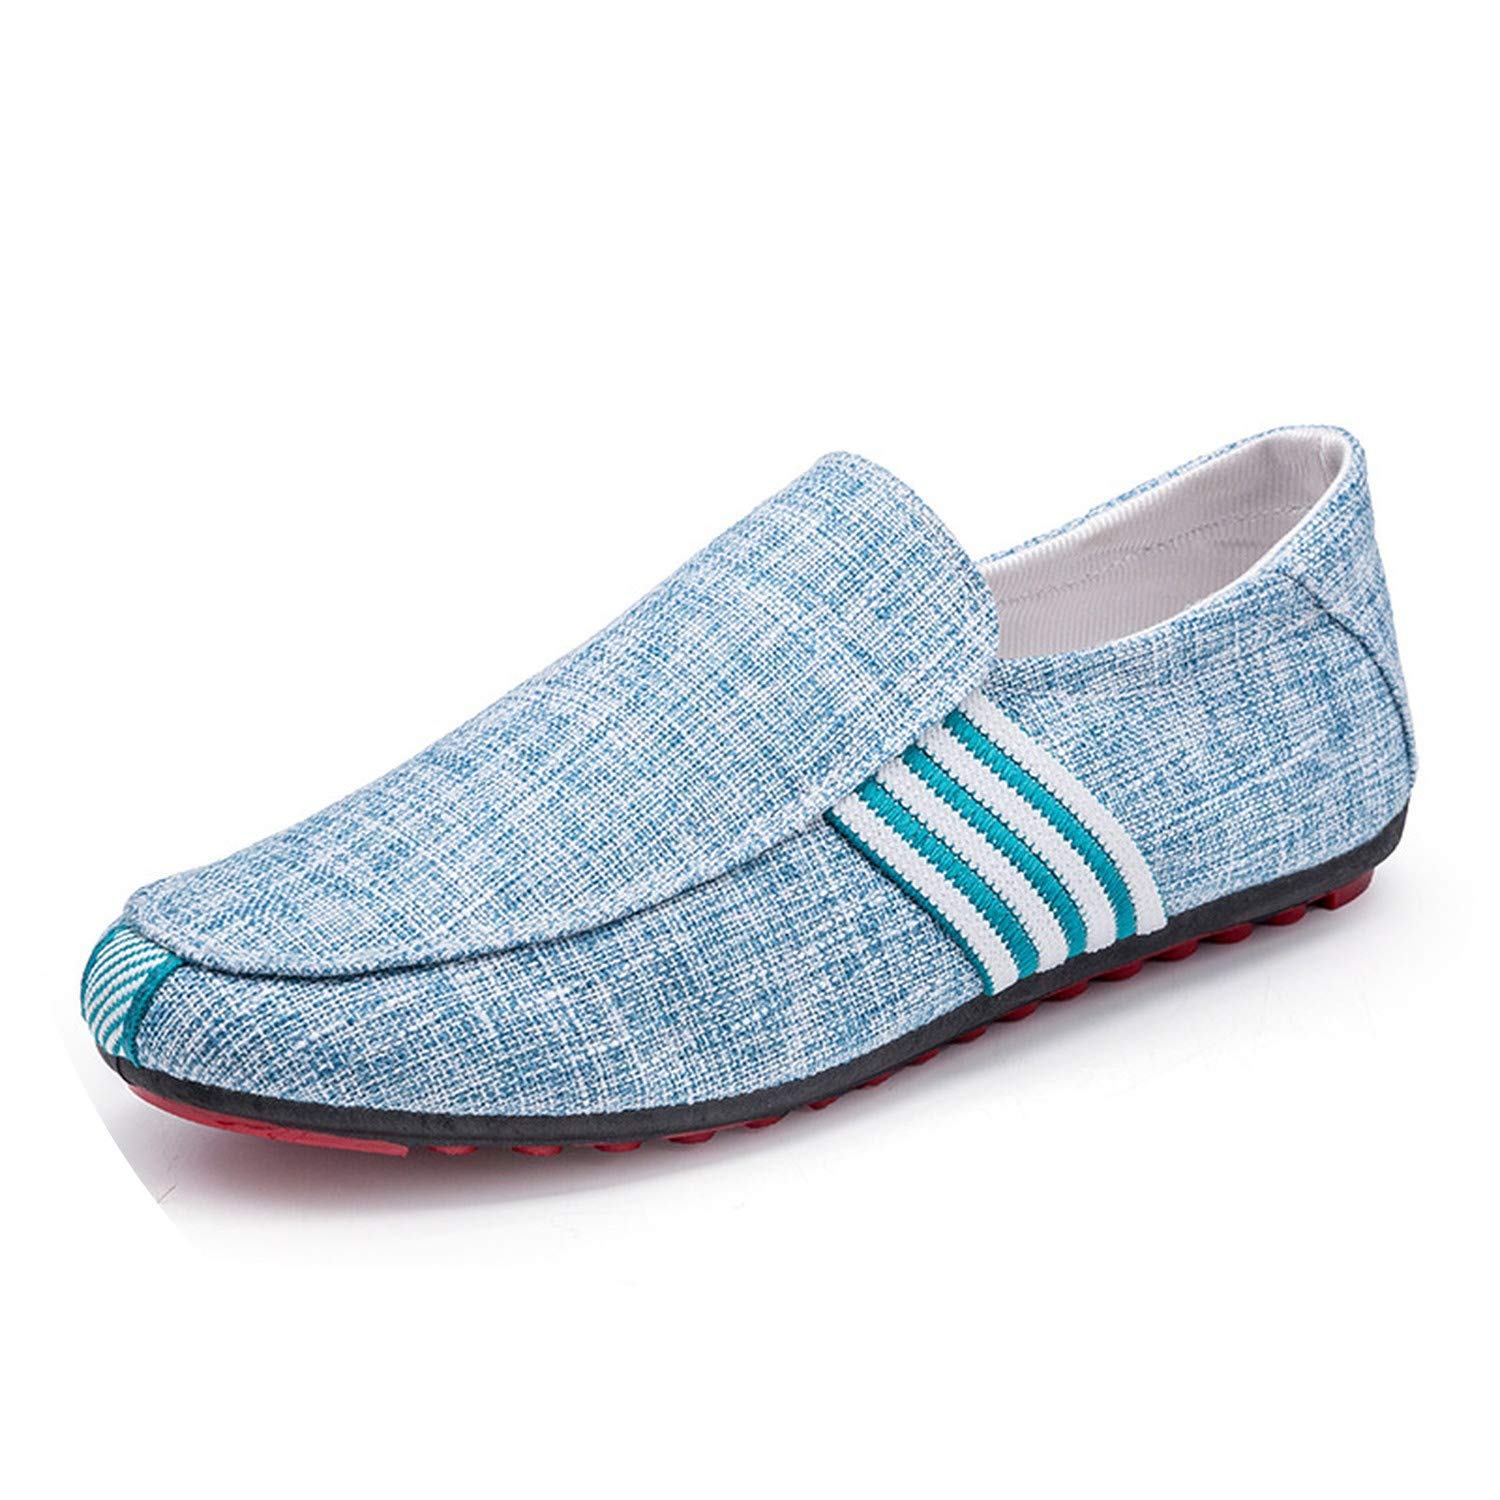 Li-Never 2019 New Spring Men Suede Leather Loafers Driving Shoes Moccasins Summer Fashion Mens Casual Shoes Flat Breathable Lazy Flats,Fabric Blue,8.5,Italy